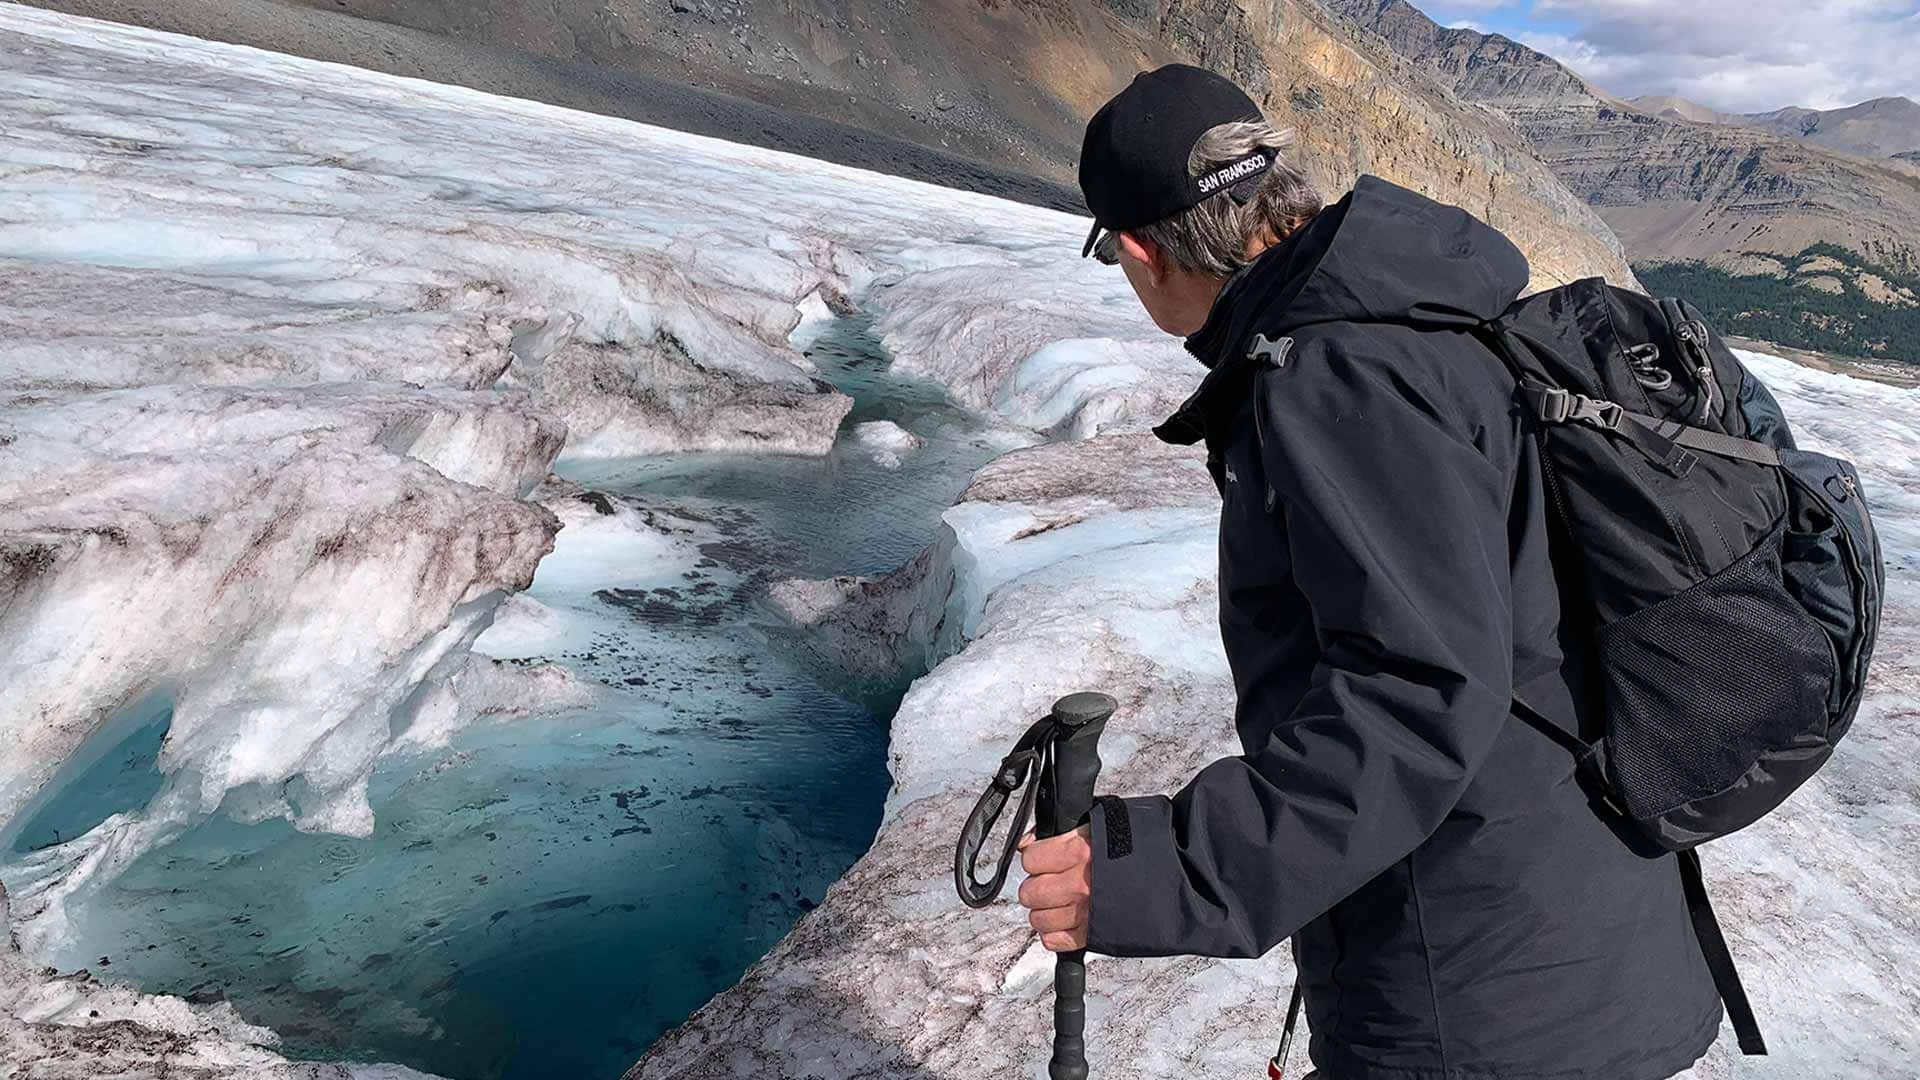 ca.news.yahoo.com: Melting ice and glaciers could lead to water crisis